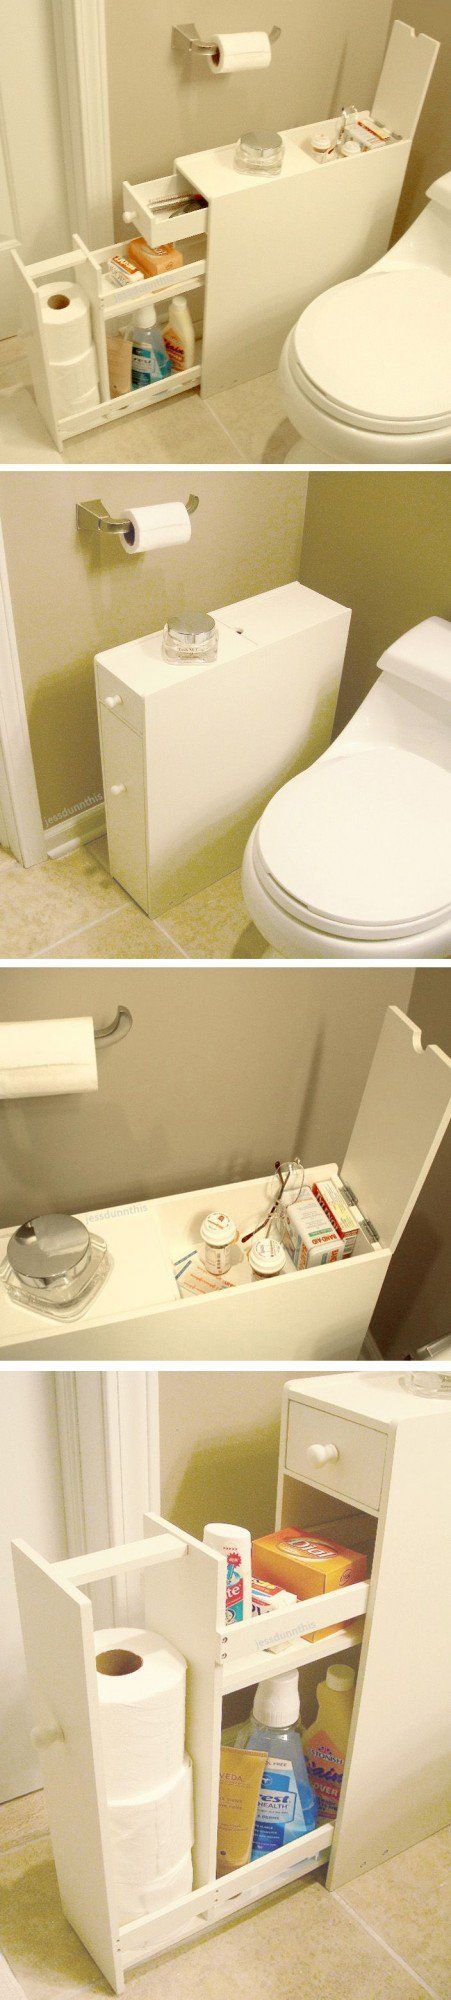 Best Small Bathroom Storage Ideas On Pinterest Small - Bathroom cabinets for small spaces for small bathroom ideas